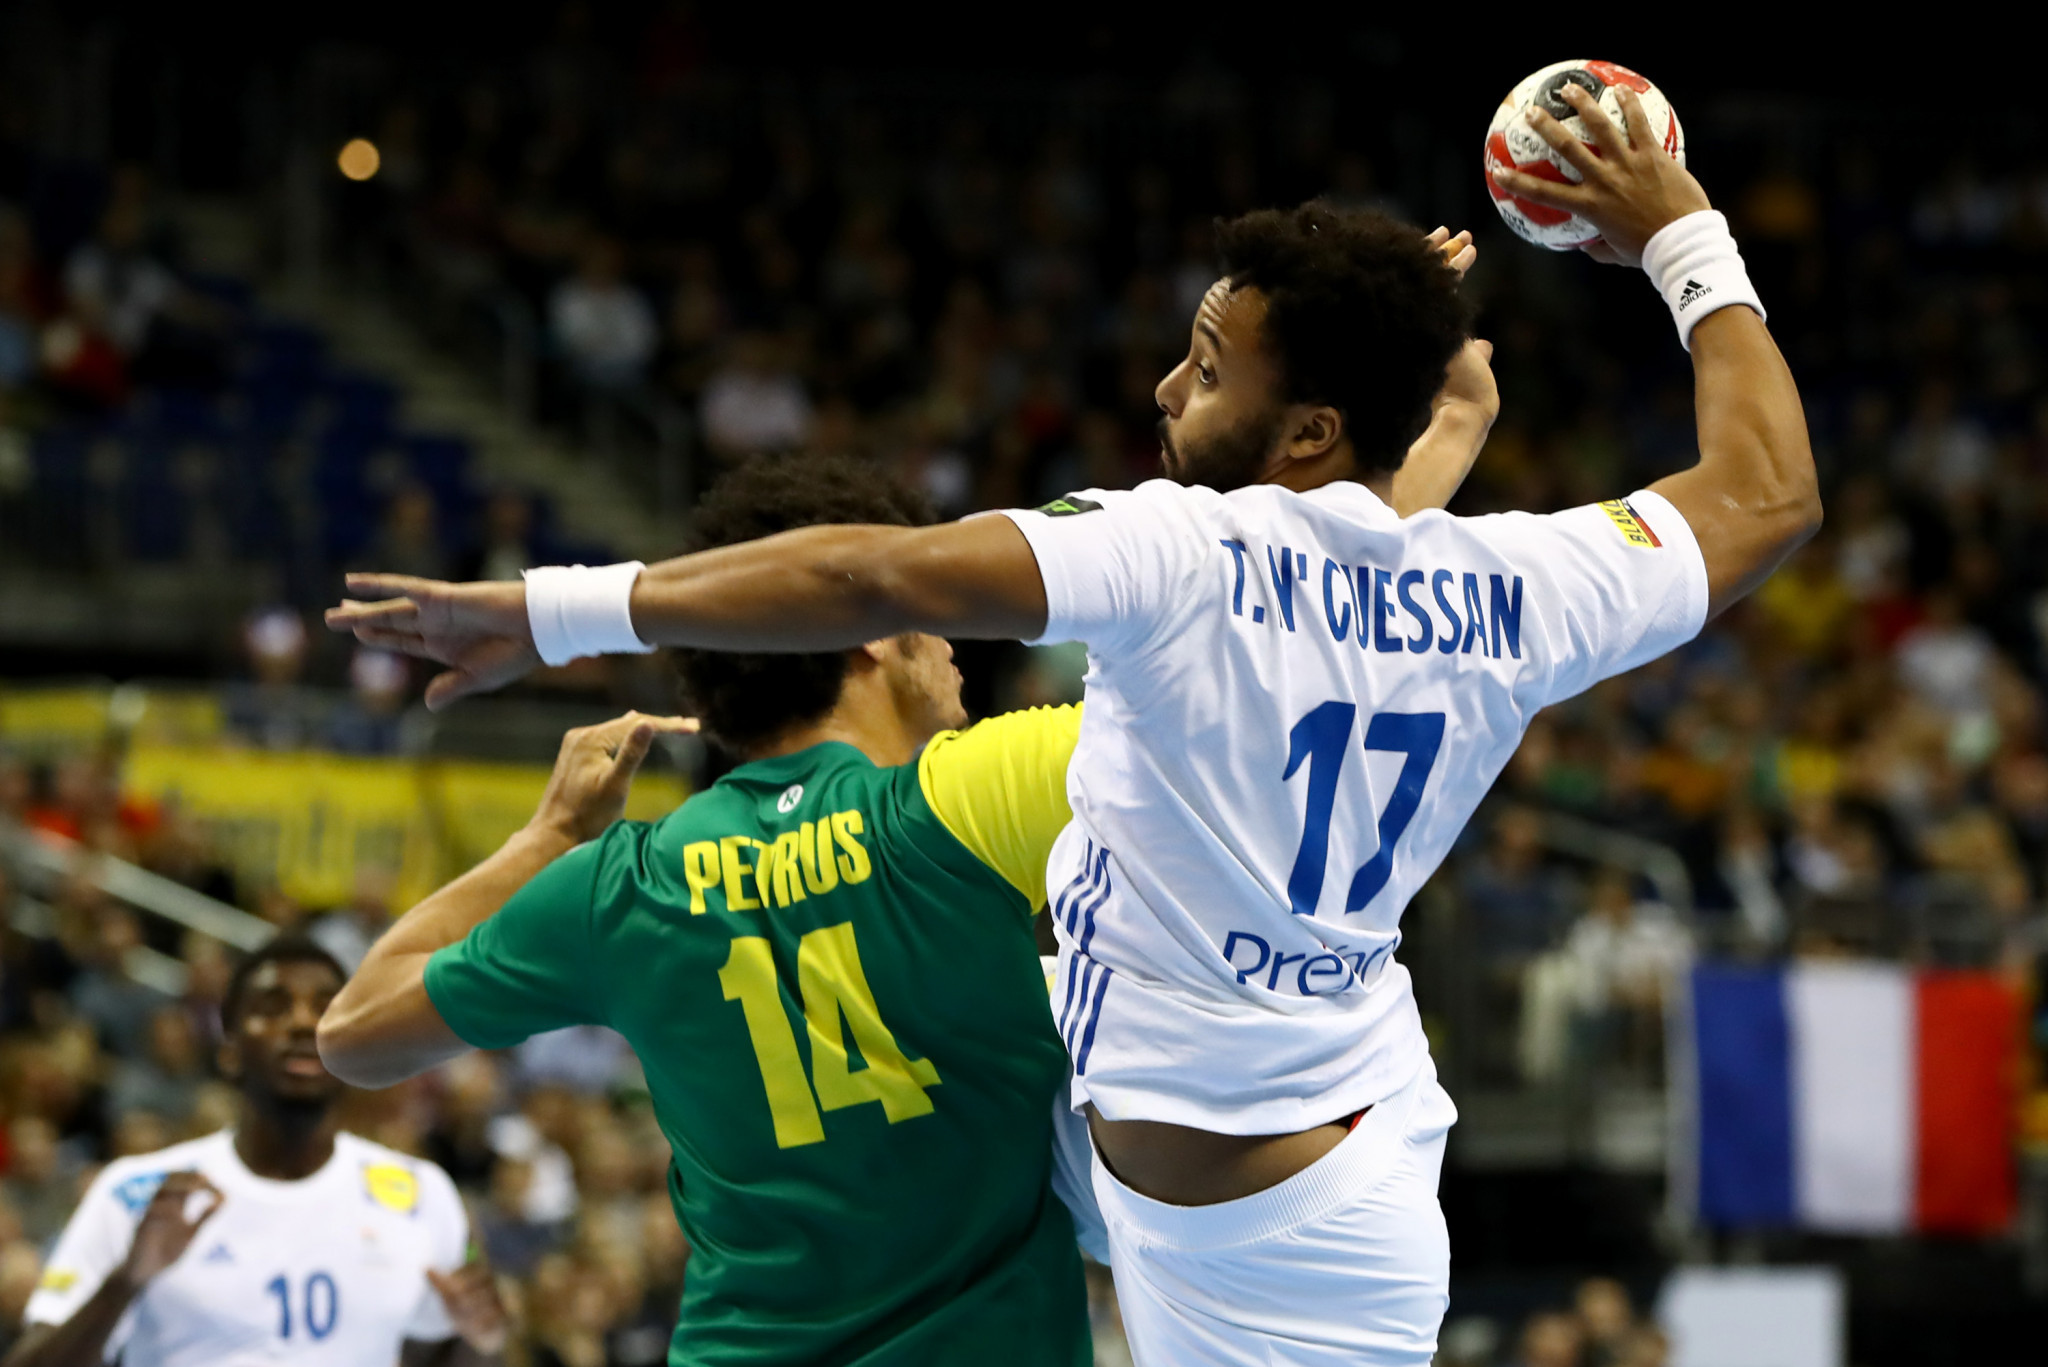 Defending champions France defeated Brazil in their opening game of the IHF Men's Handball World Championship in Berlin ©Getty Images